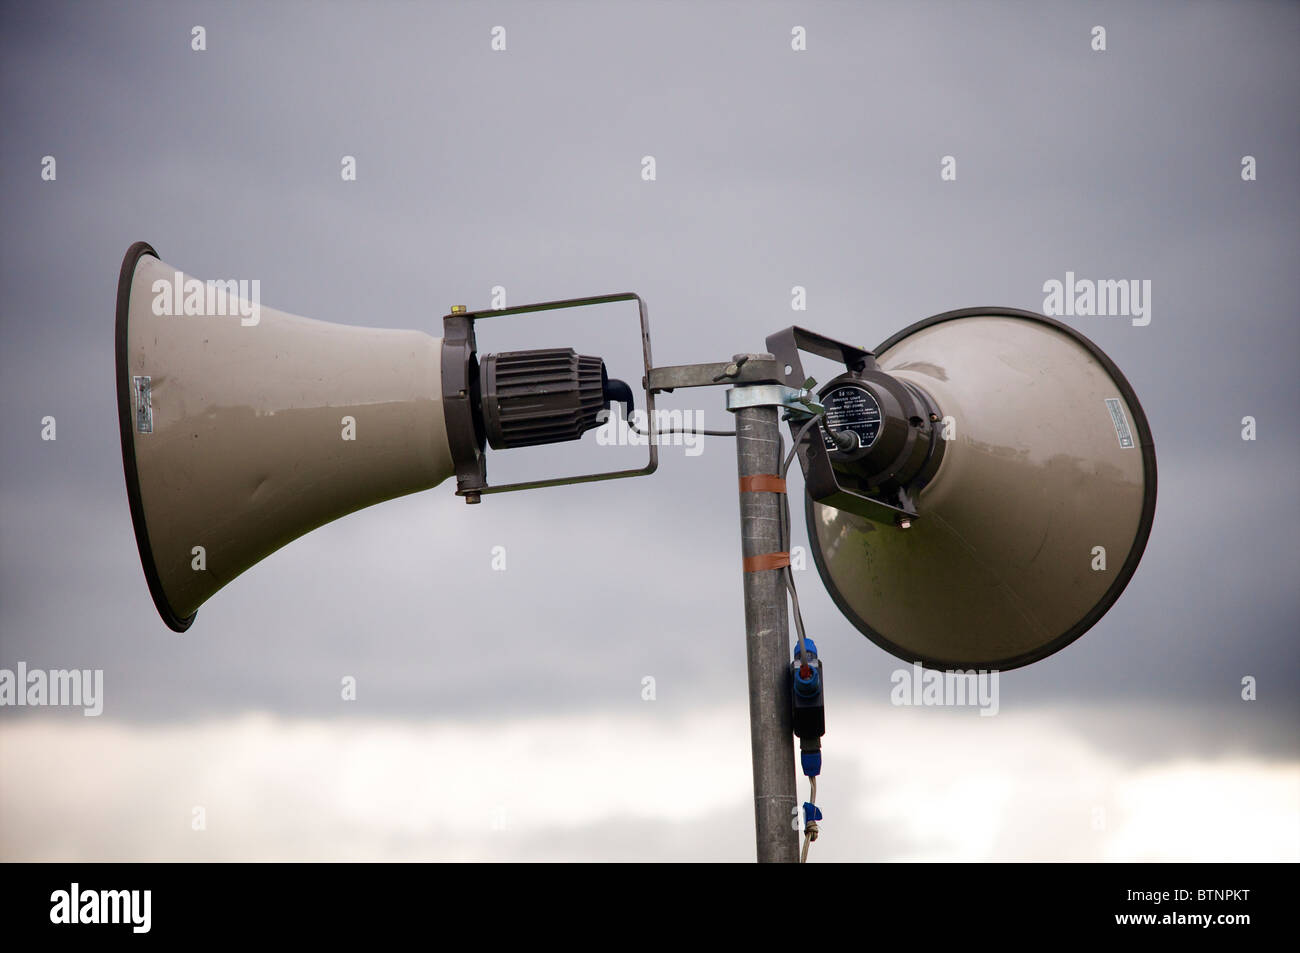 Close up of outdoor public address system against a grey sky - Stock Image